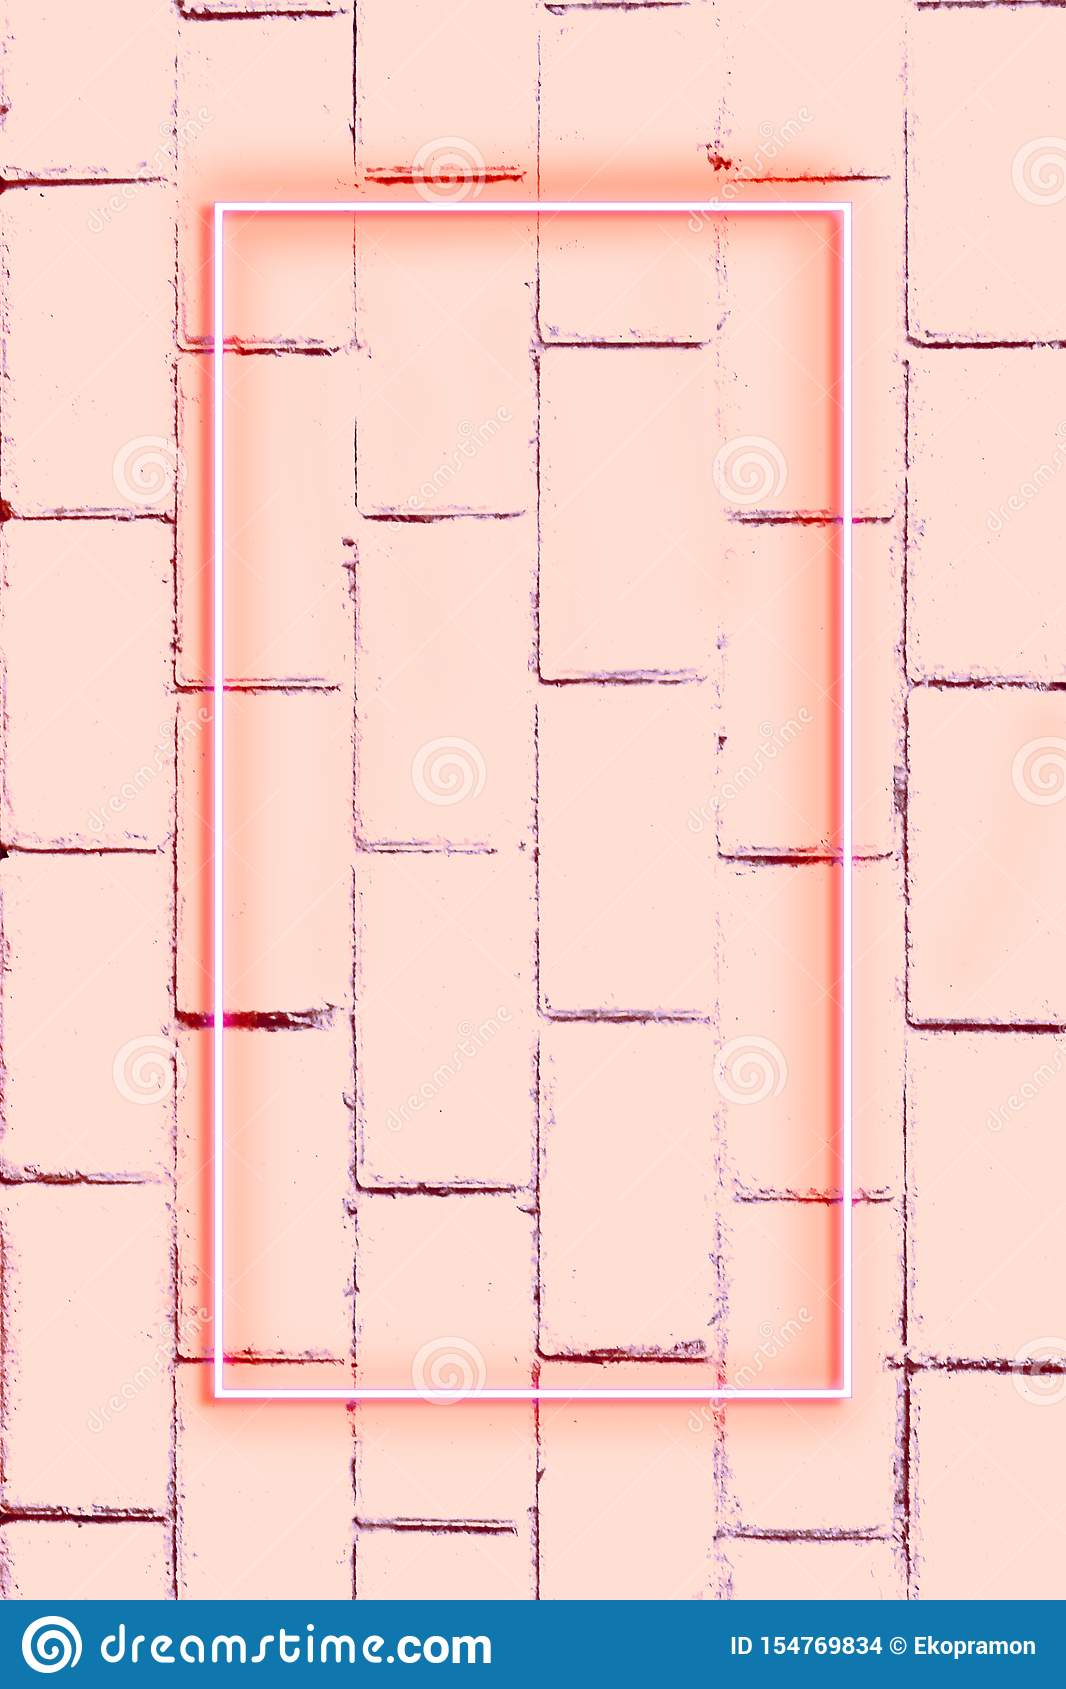 Realistic Brick wall, background, neon light, free space for text